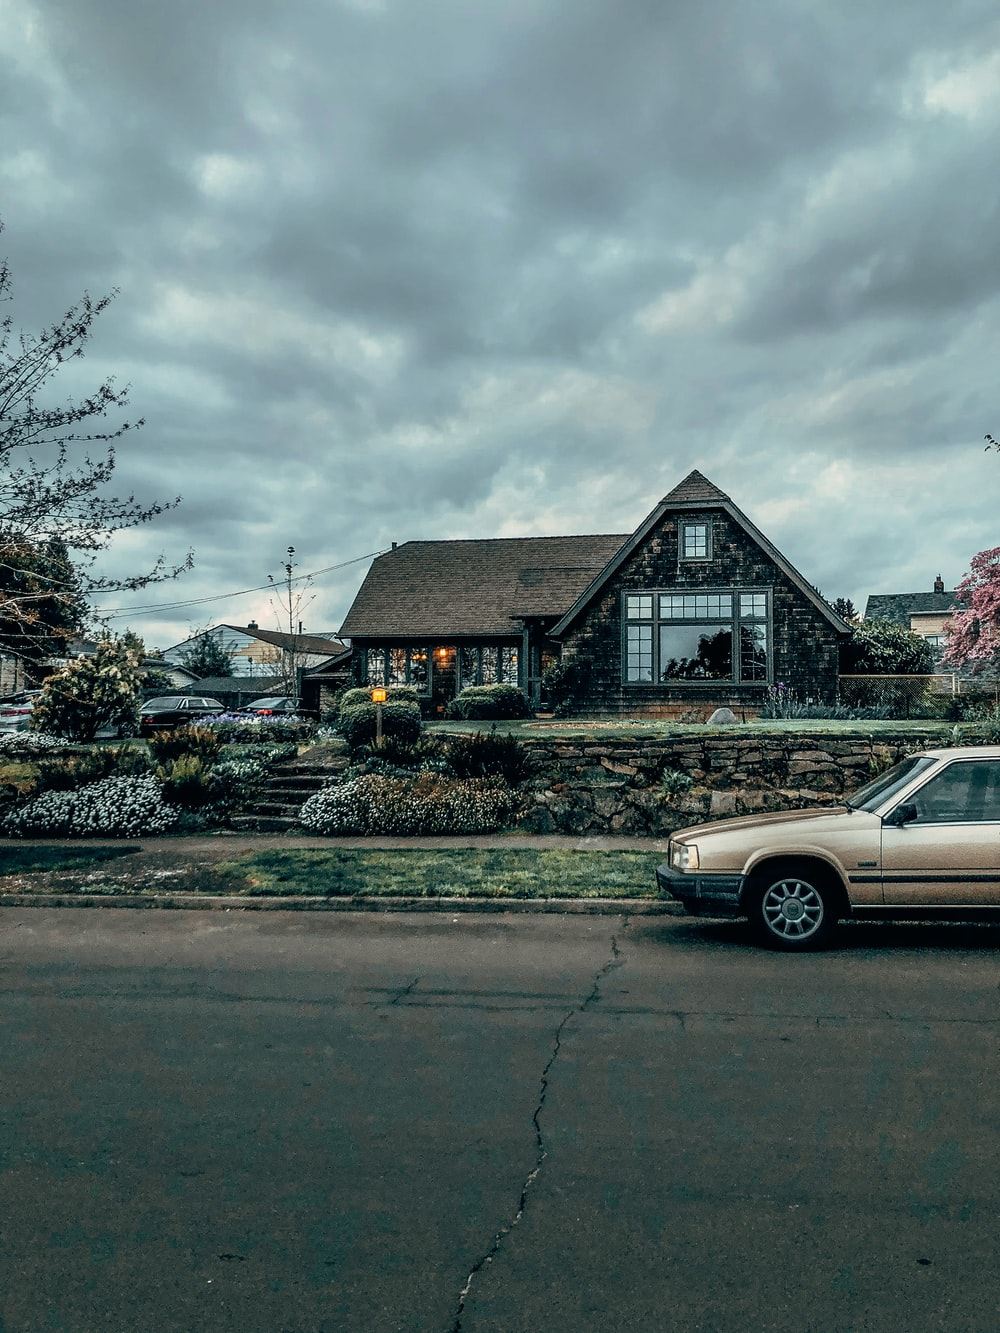 white sedan parked beside brown wooden house under white clouds during daytime